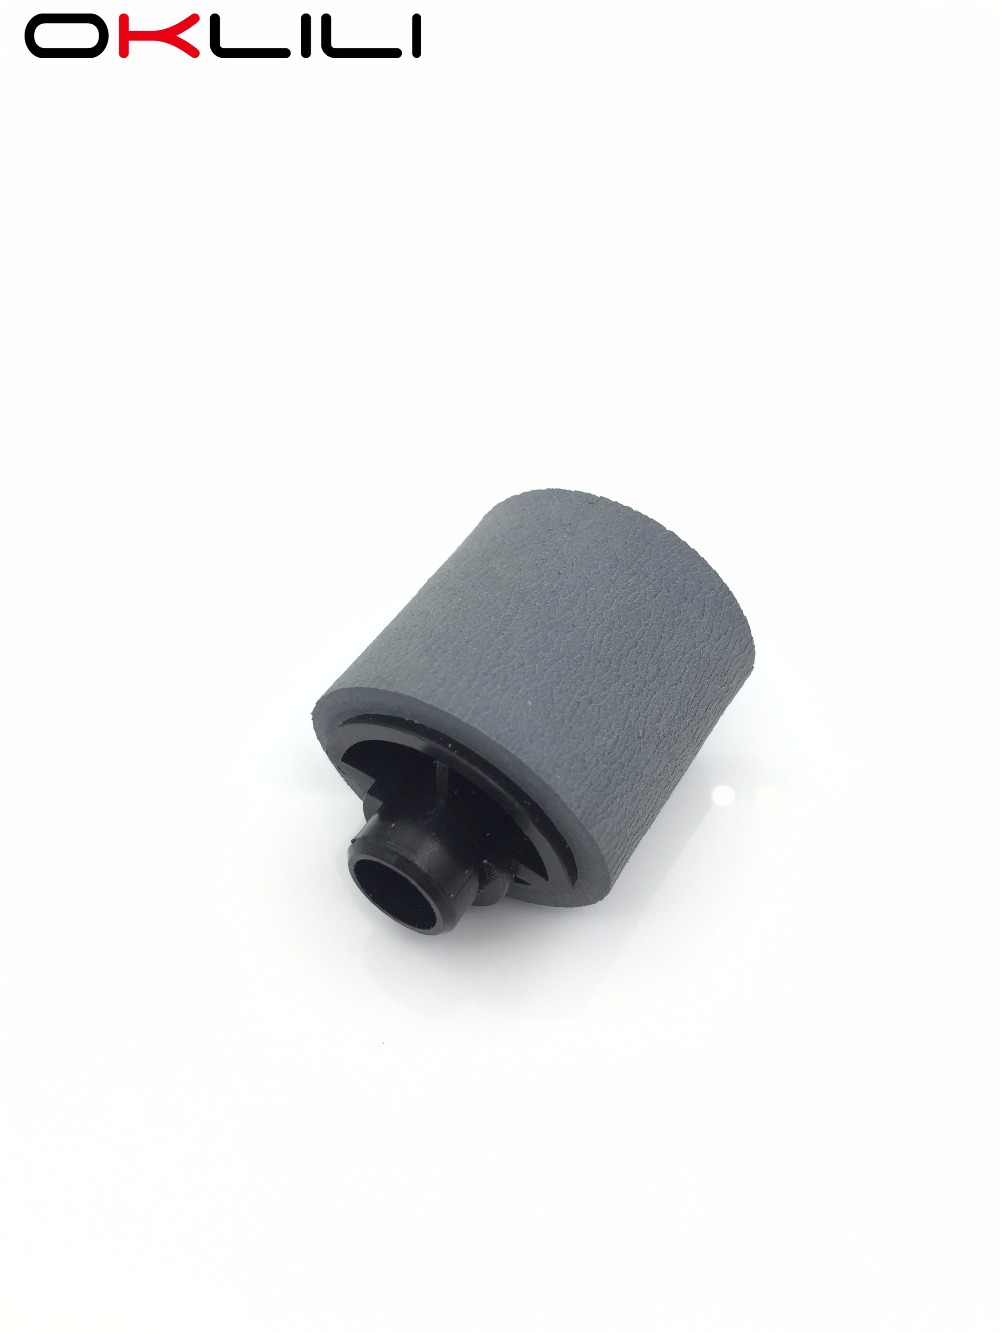 10X JC72-01231A Pickup Roller for Samsung ML1510 1710 1740 1750 2250 SCX4016 4116 4100 4200 4220 4300 4500 4520 4720 SF560 SF565 printer power supply board for samsung ml 1510 ml 1710 ml 1740 ml 1750 ml 1510 1710 1750 power board free shipping on sale